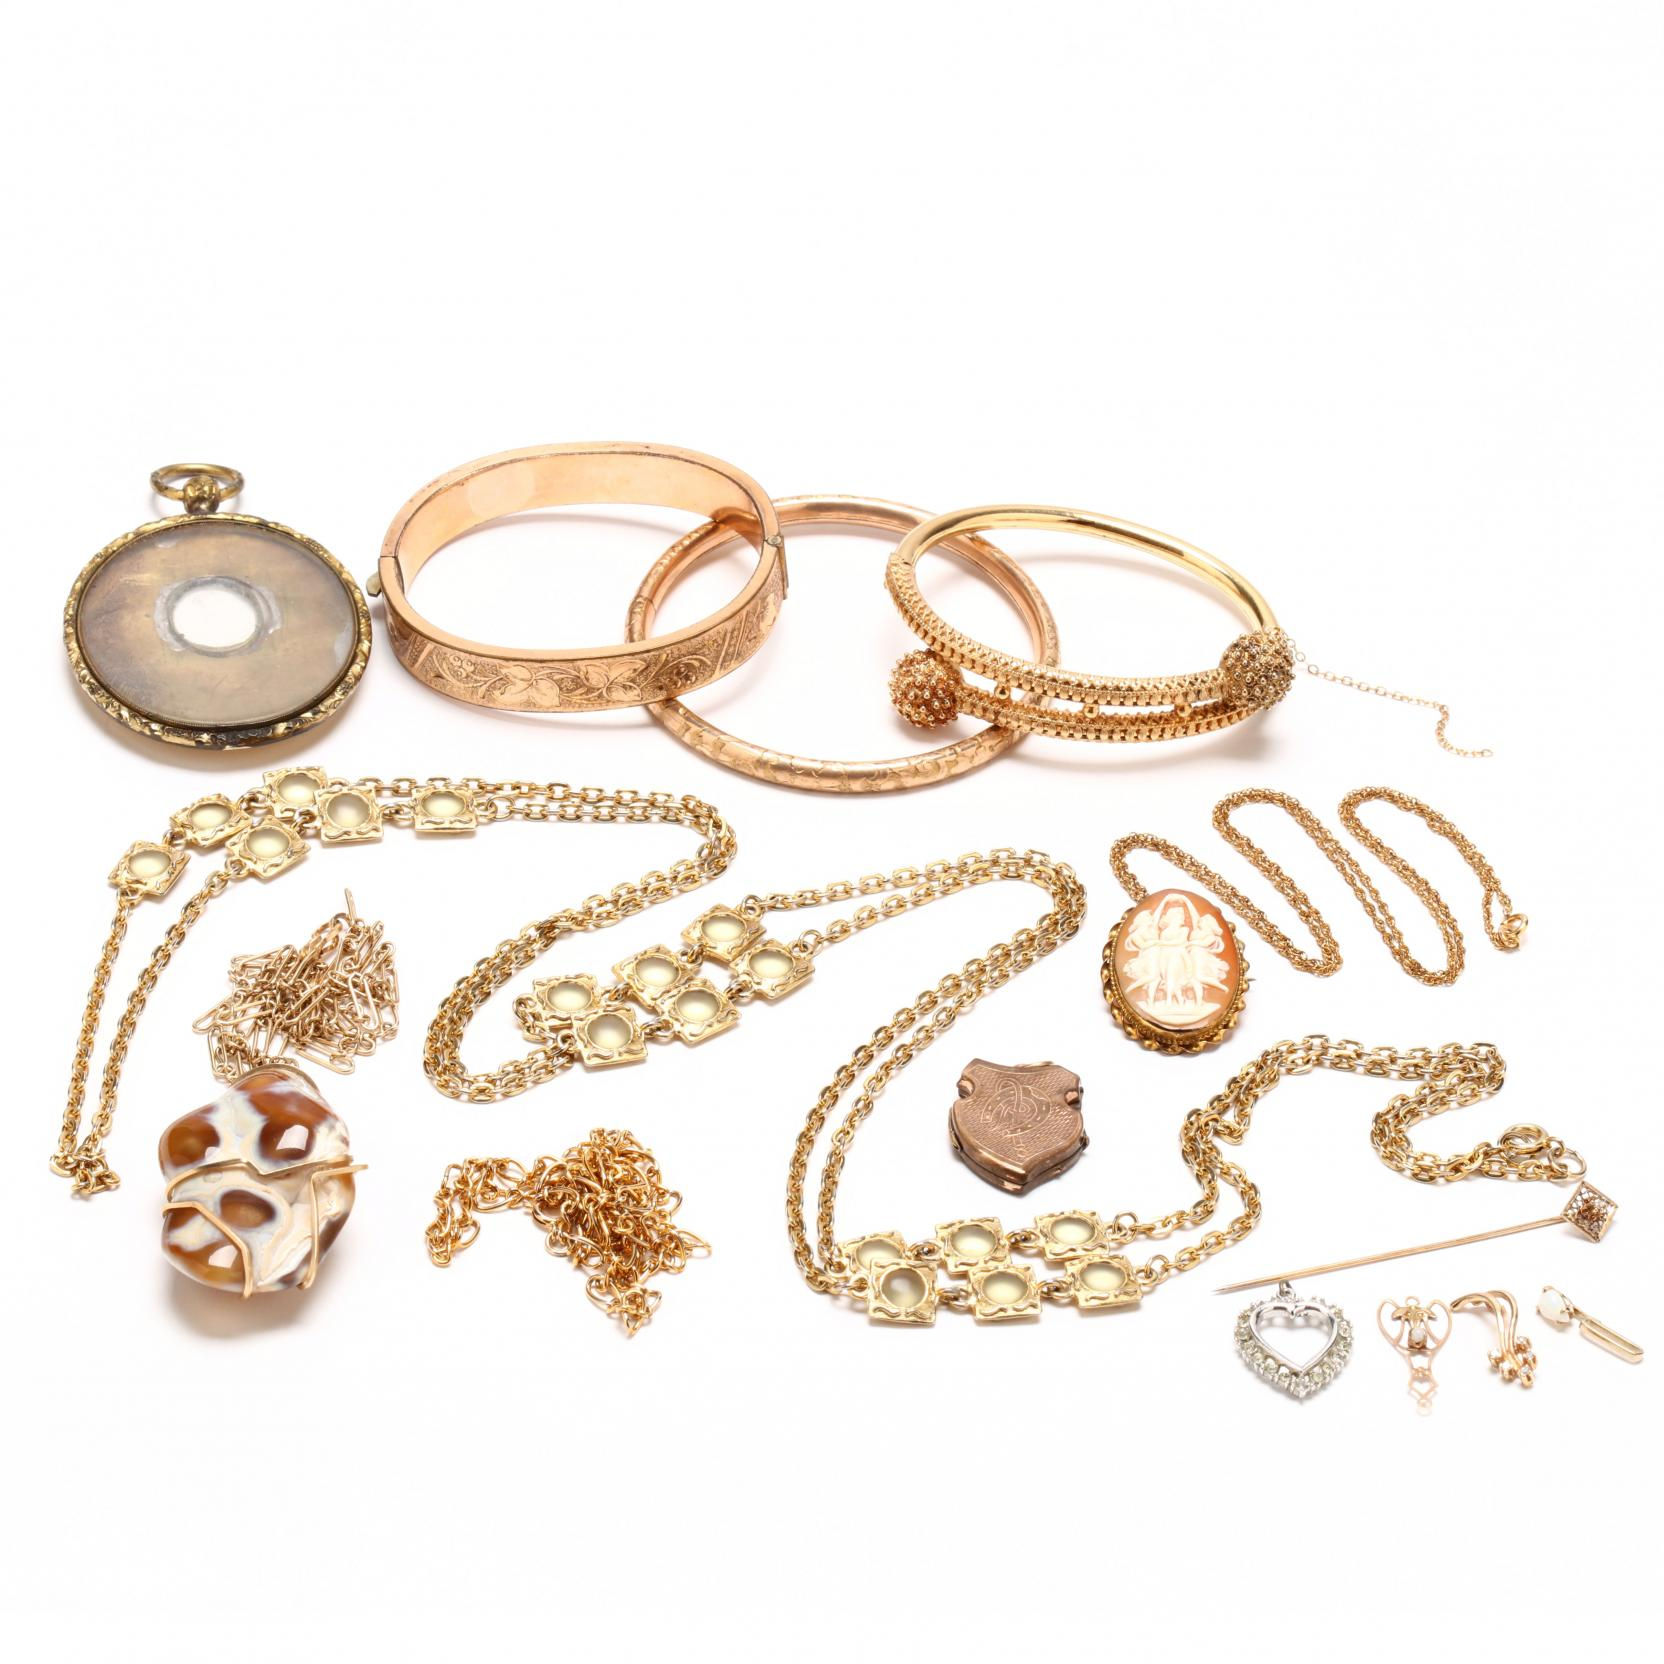 group-of-vintage-costume-jewelry